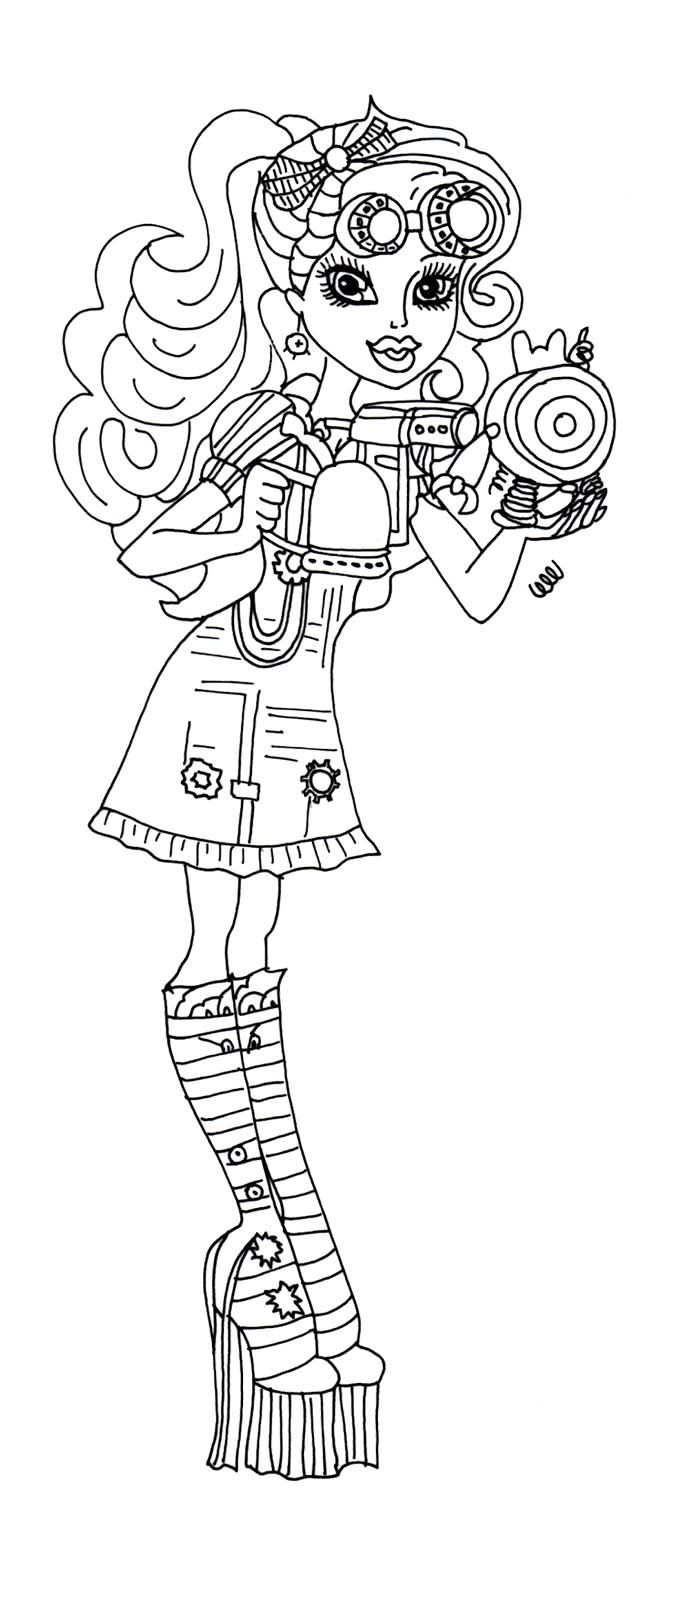 Monster High Robecca Steam Issuing Tools Coloring Page | Monster ...